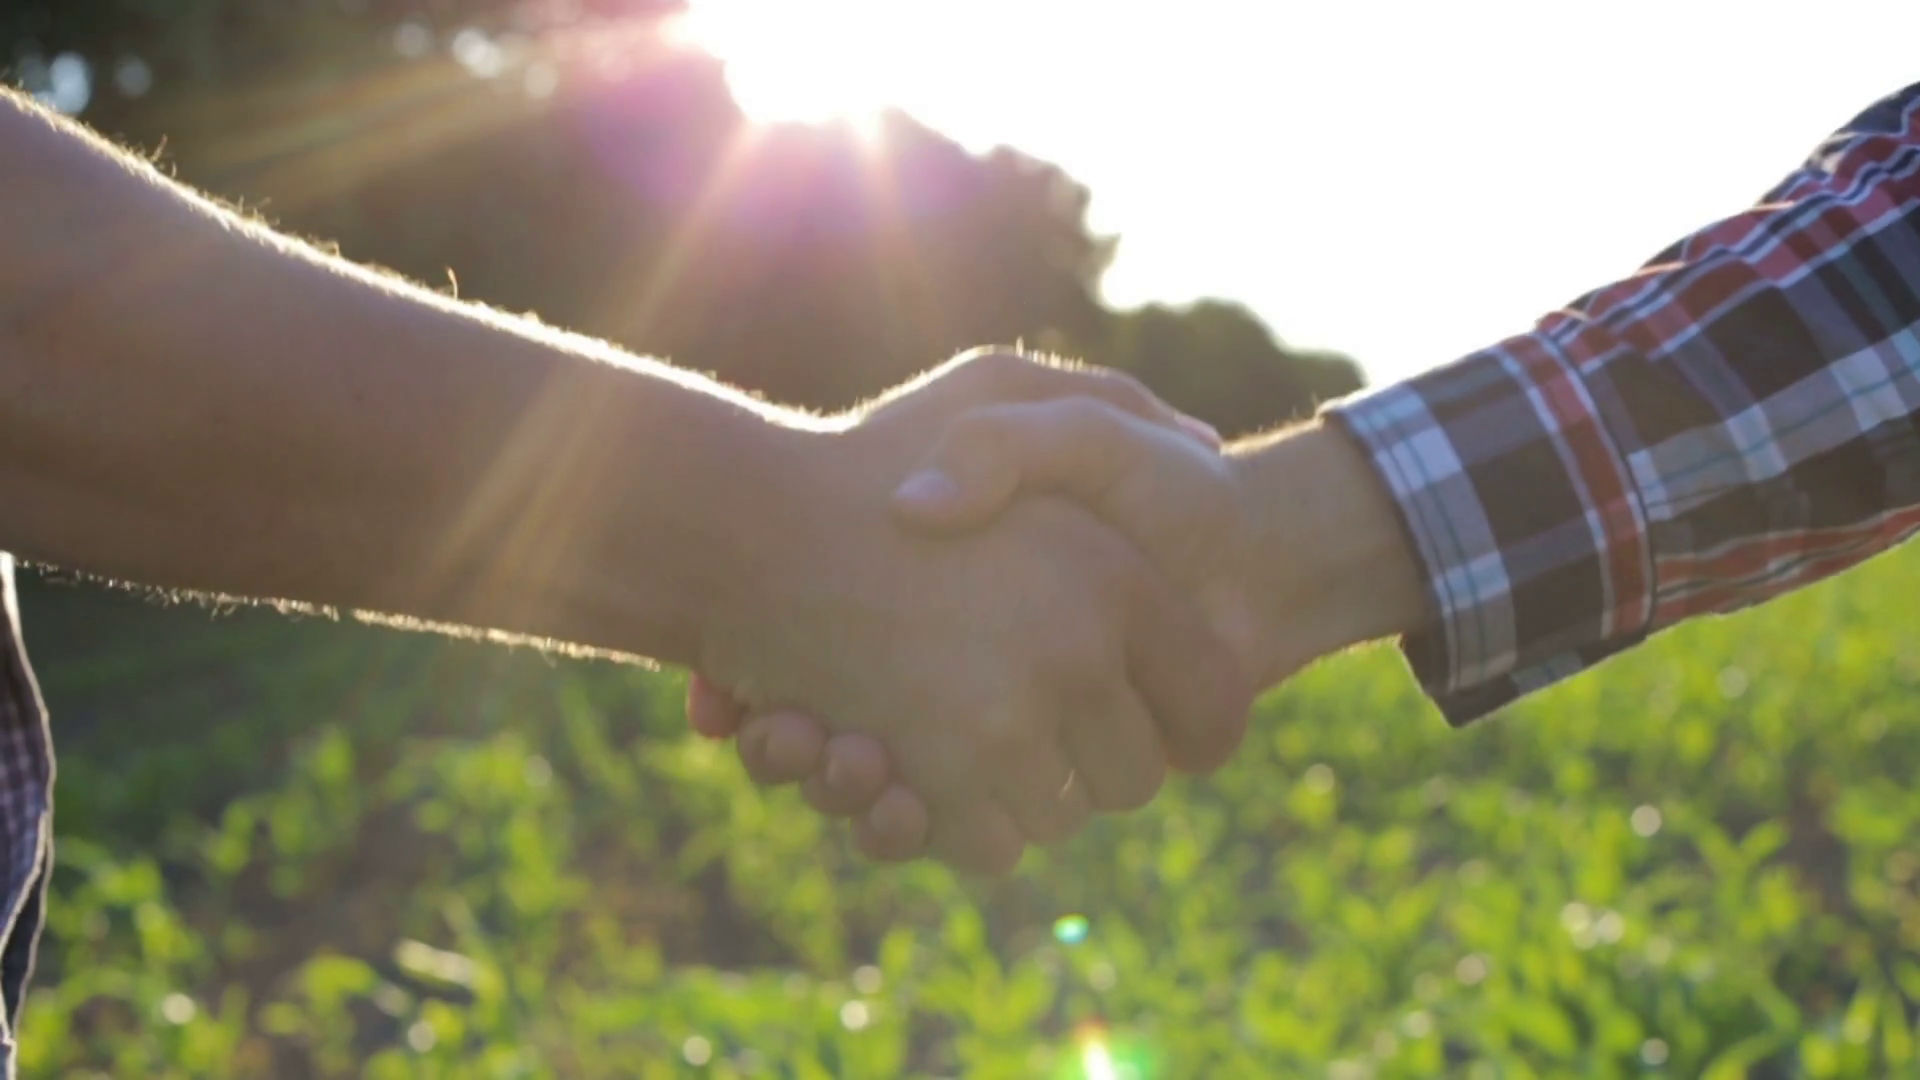 https://www.centroveterinariosanmartino.it/wp-content/uploads/2019/03/videoblocks-handshake-of-two-farmers-on-the-field_bx81poomb_thumbnail-full12.png